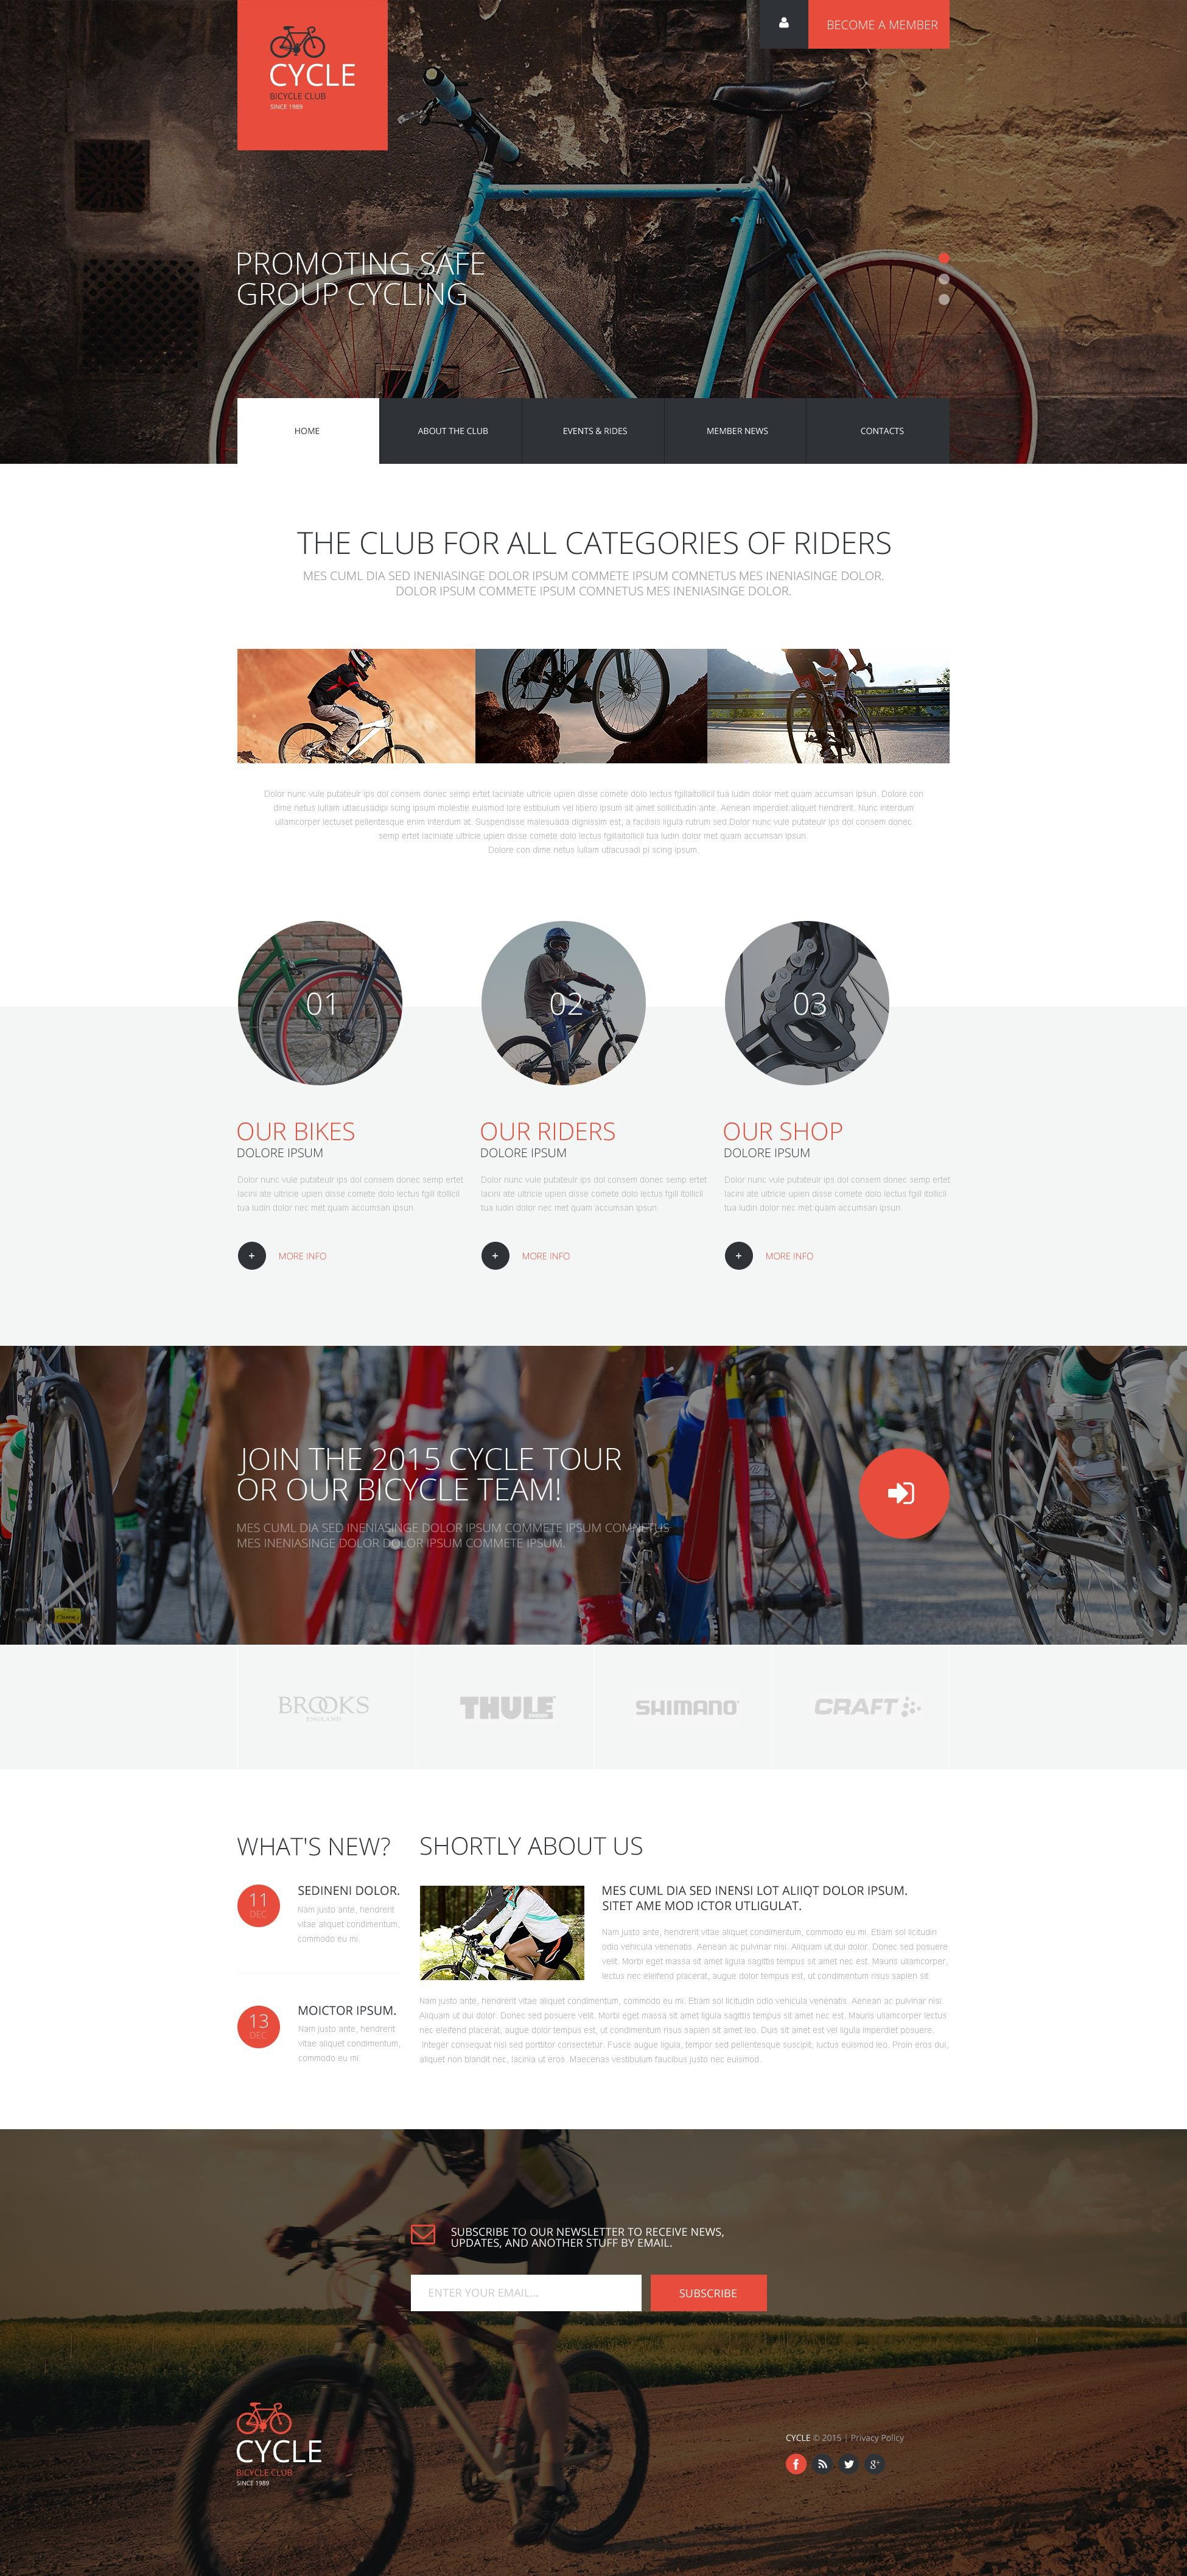 The Cycle Club Responsive Javascript Animated Design 53468, one of the best website templates of its kind (sport, most popular), also known as cycle club website template, racing website template, bike website template, spor blog website template, bicycle website template, improvement website template, help website template, exhibition solution website template, market website template, research website template, vendor website template, motor website template, price website template, speed website template, driving website template, off-road website template, driver website template, track website template, race website template, urban website template, freeway website template, highway website template, road website template, spare website template, services website template, helmet website template, offers website template, testimonials website template, accessories website template, pedal and related with cycle club, racing, bike, spor blog, bicycle, improvement, help, exhibition solution, market, research, vendor, motor, price, speed, driving, off-road, driver, track, race, urban, freeway, highway, road, spare, services, helmet, offers, testimonials, accessories, pedal, etc.